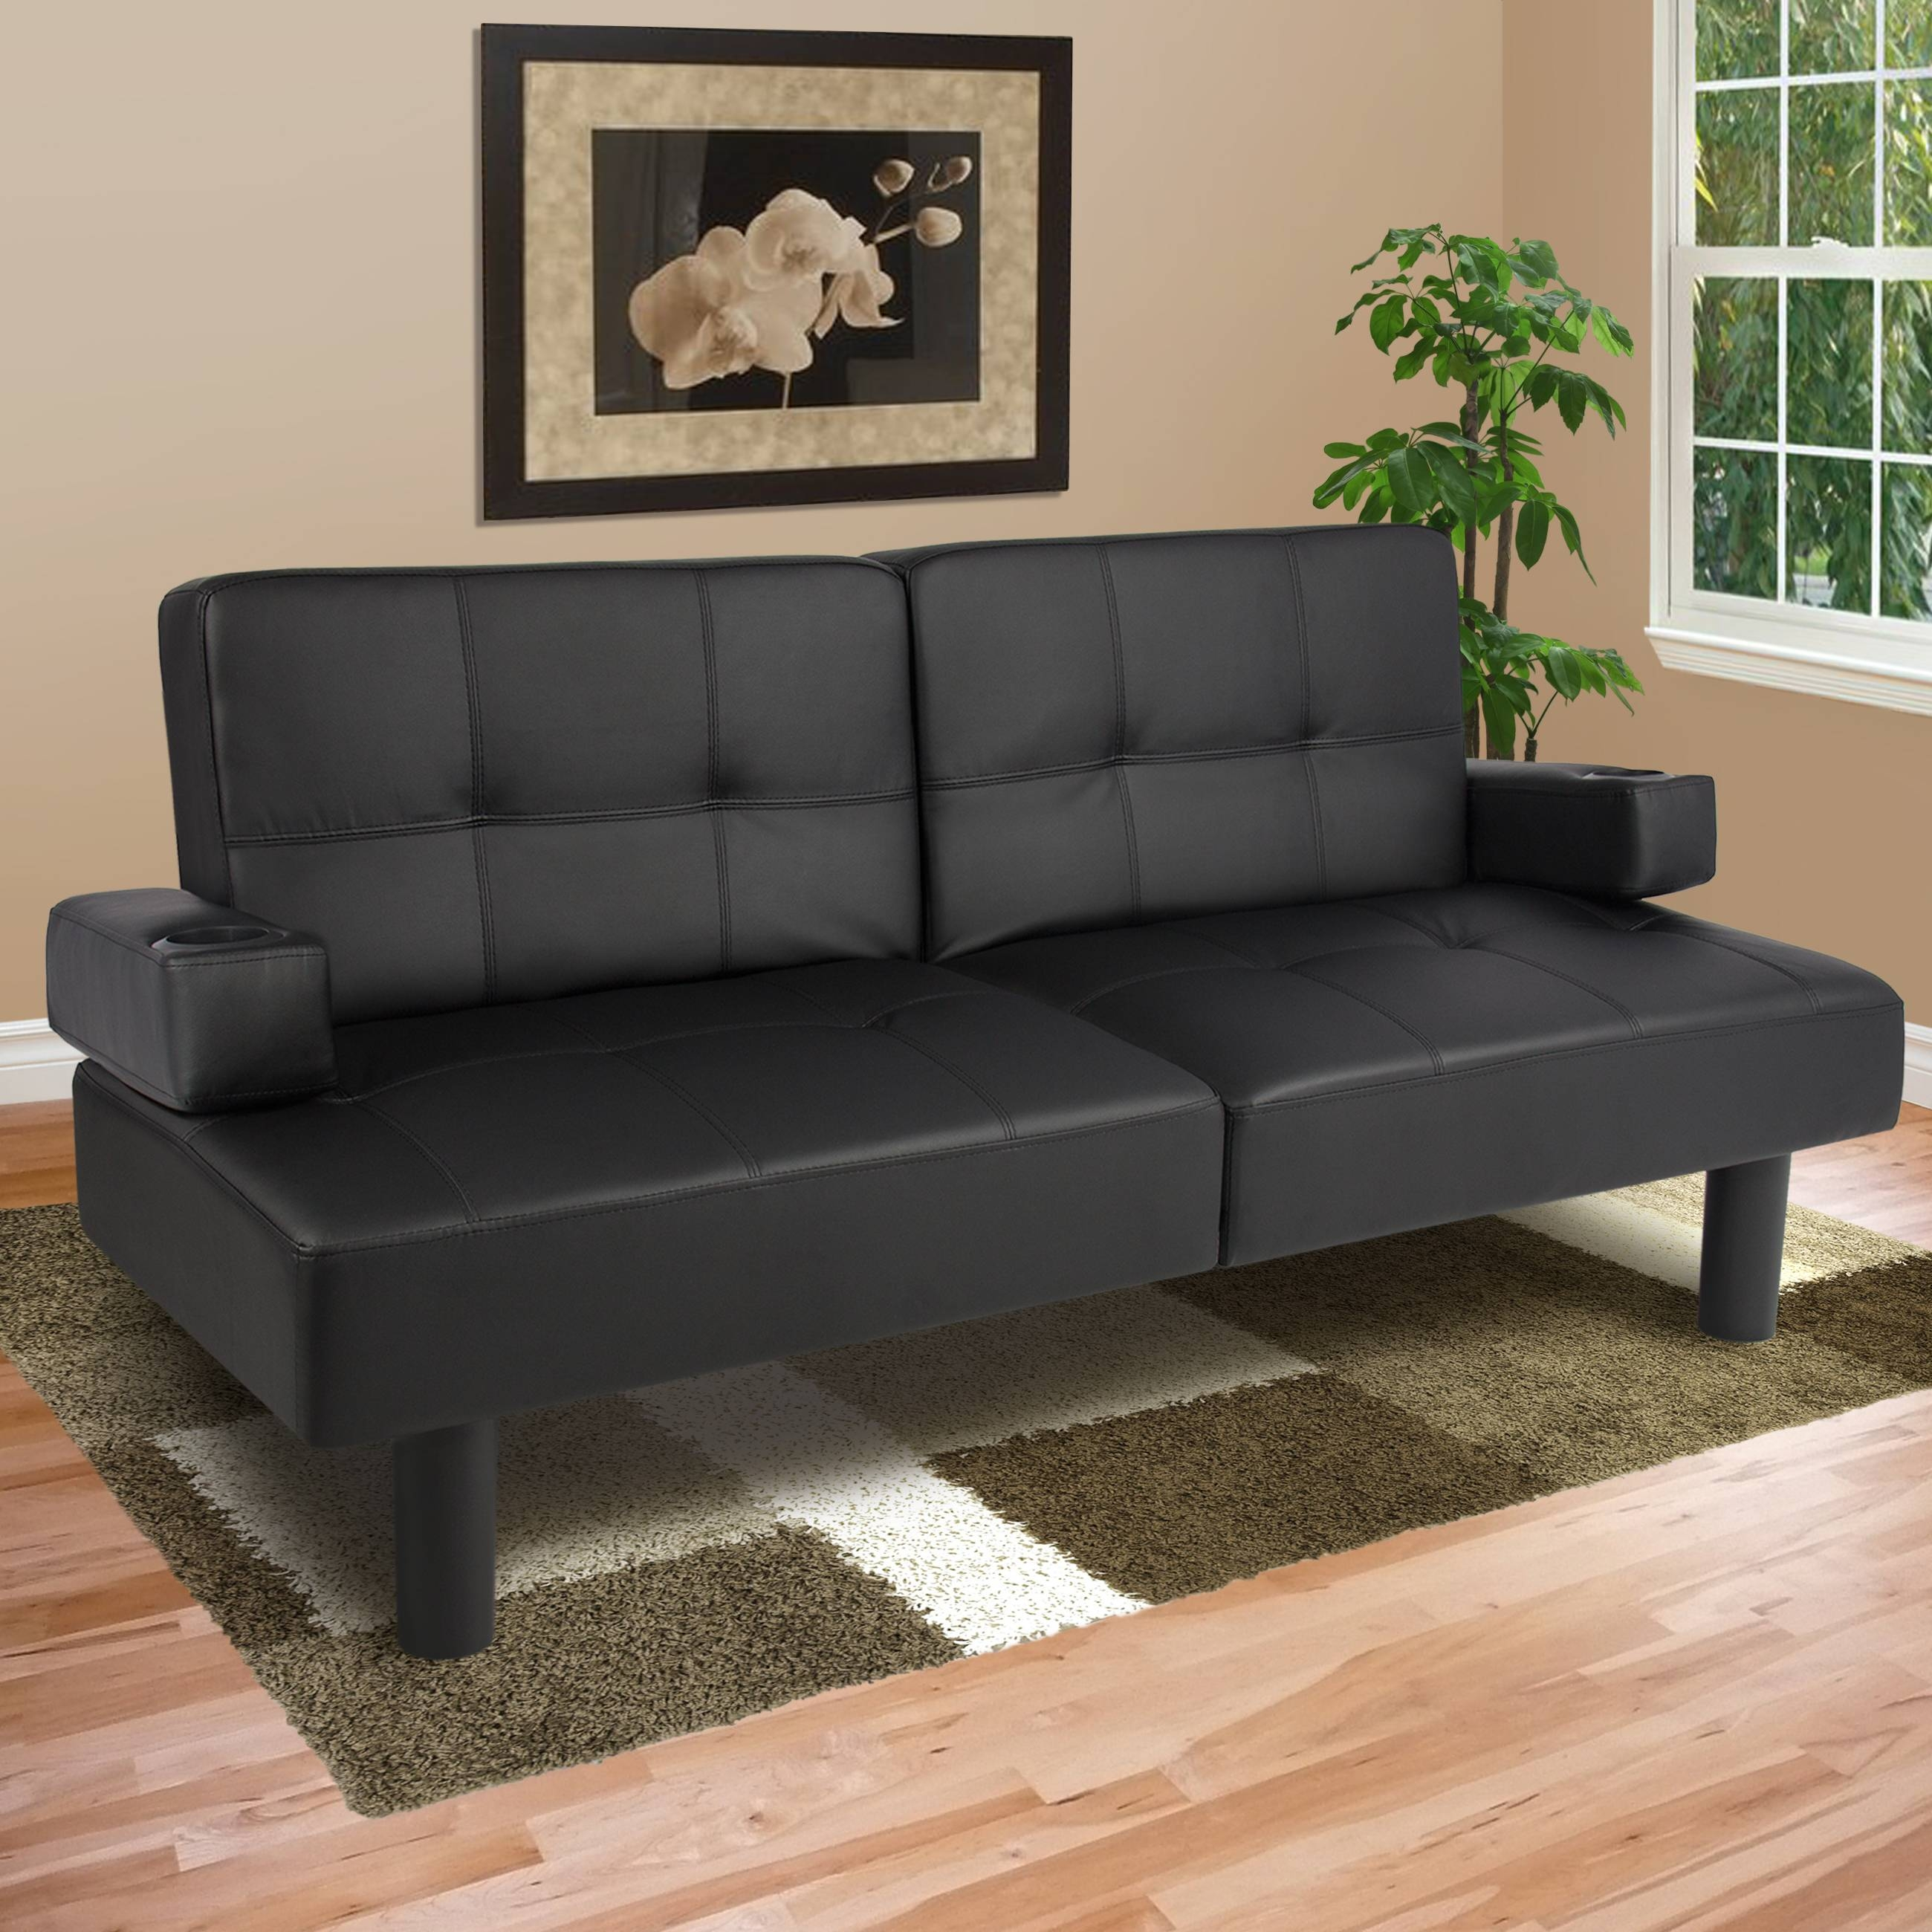 Best Choice Products Modern Leather Futon Sofa Bed Fold Up & Down throughout Small Black Futon Sofa Beds (Image 2 of 15)